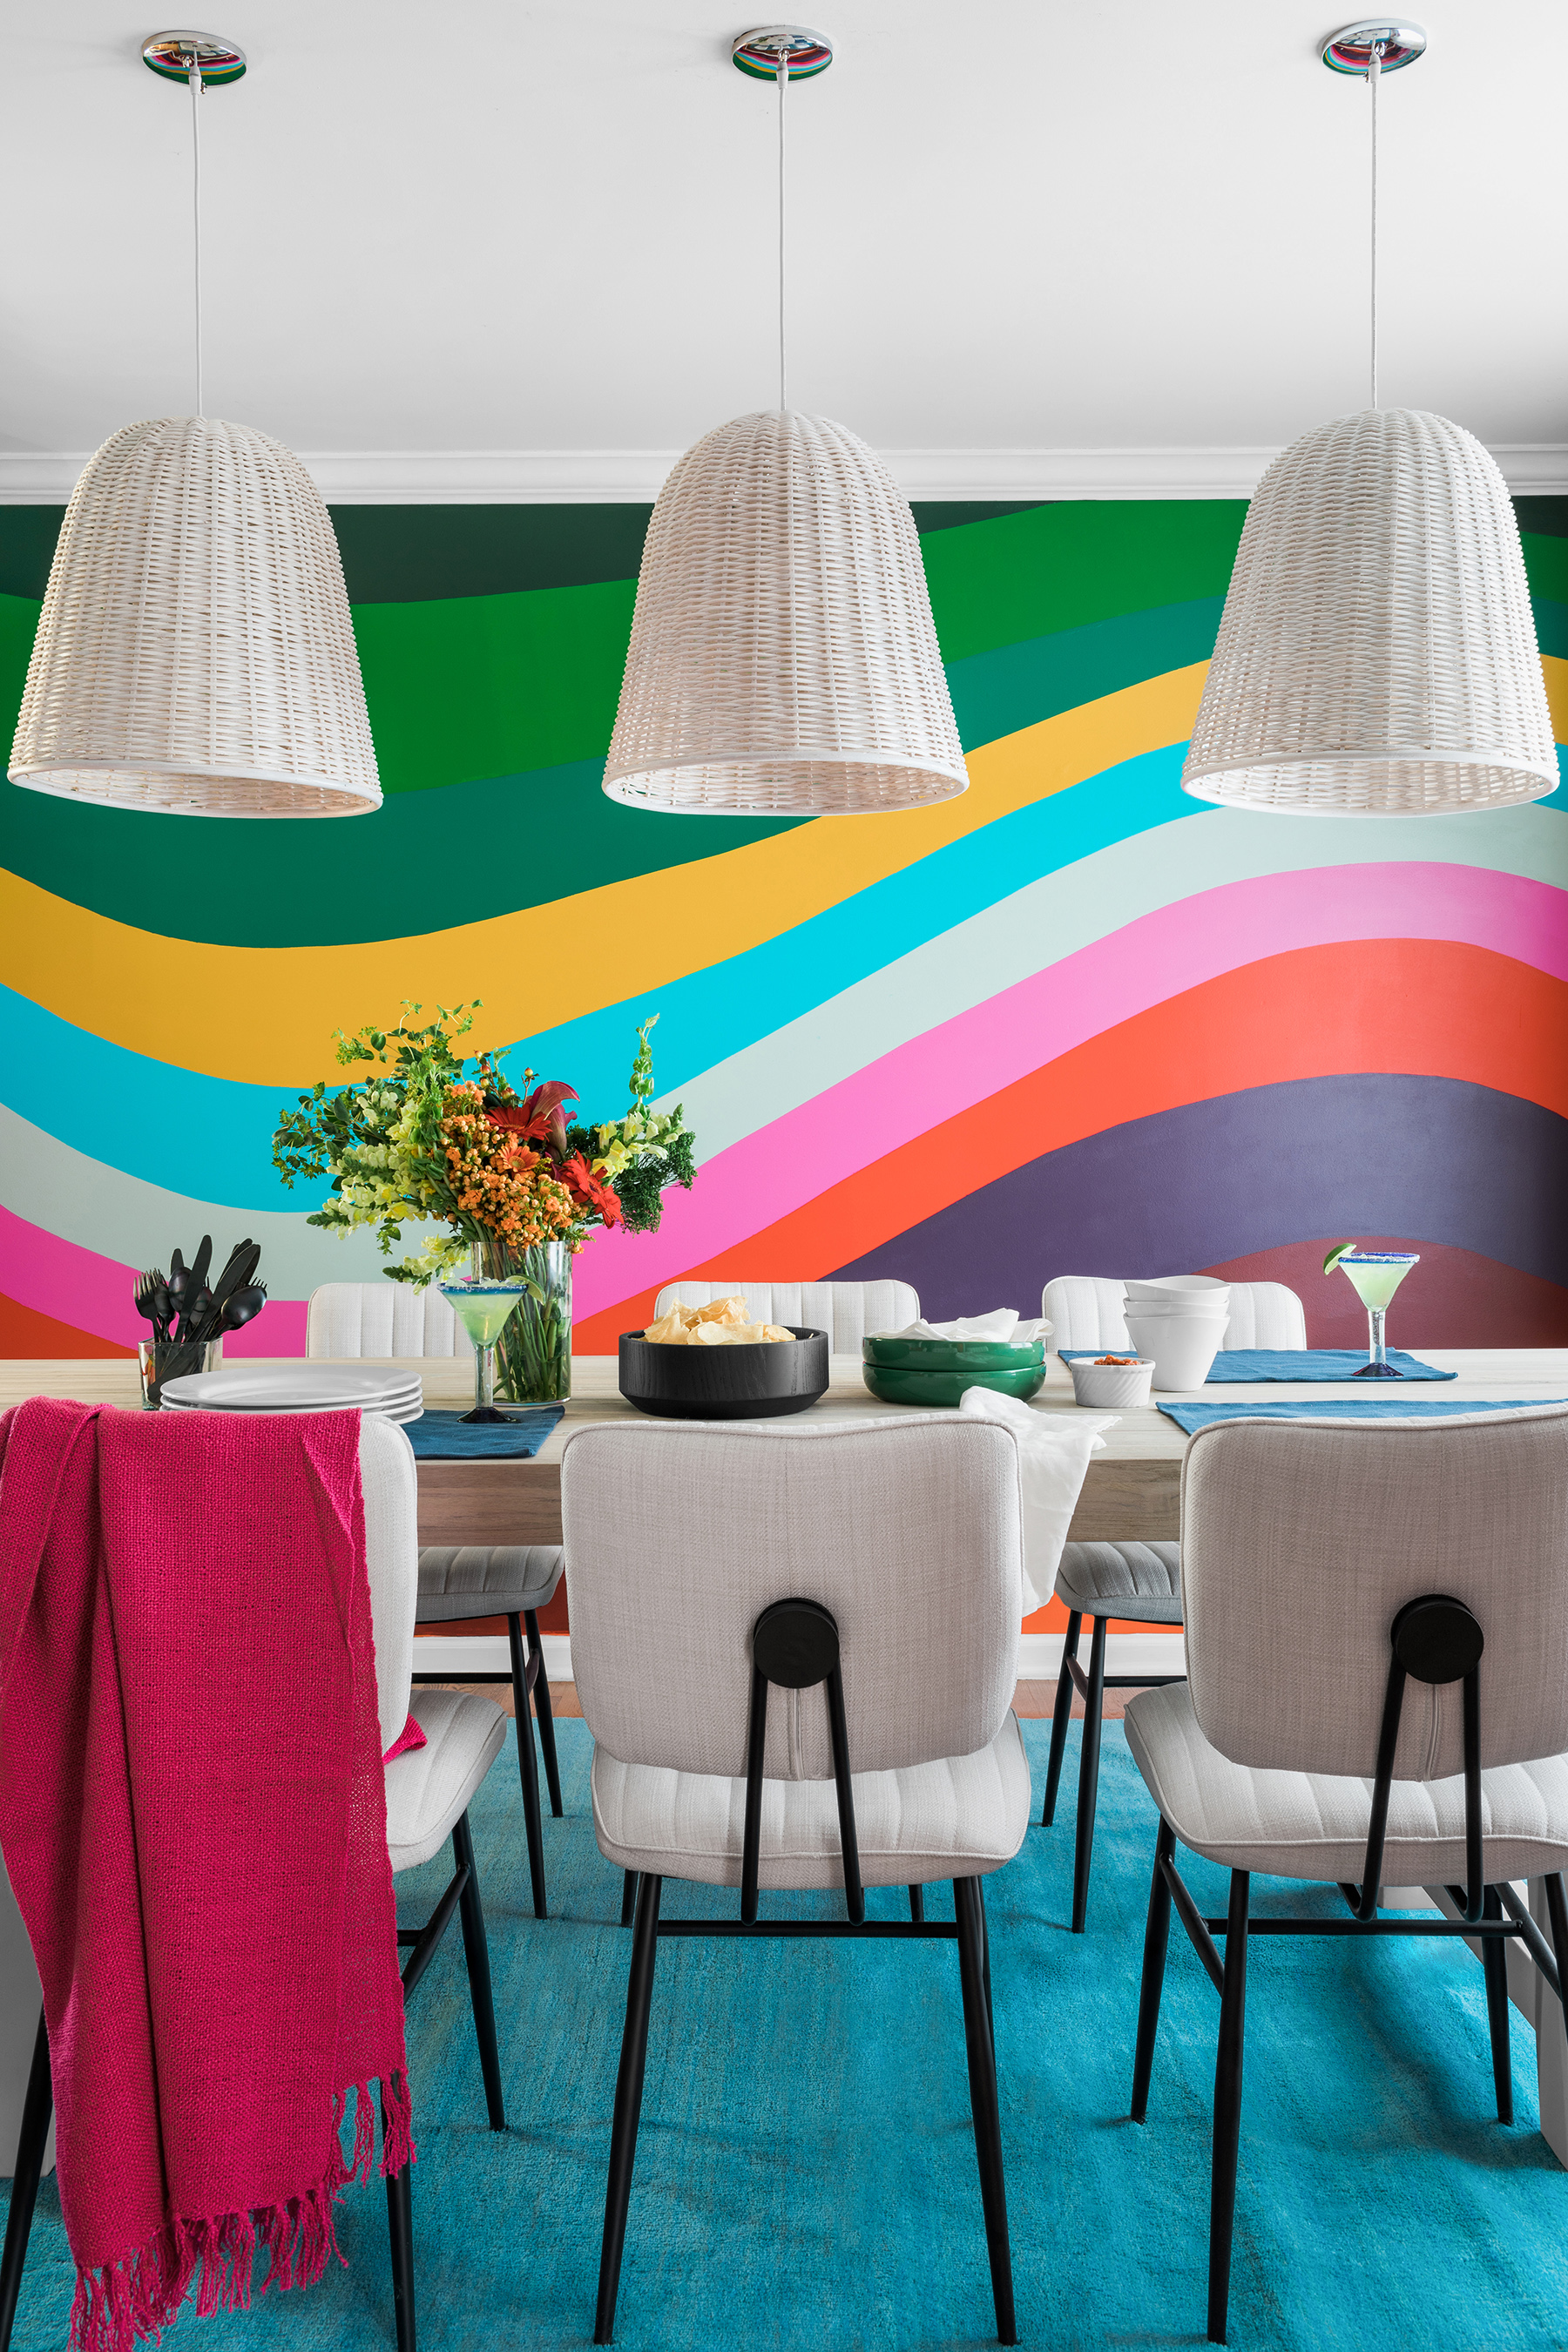 Dining room like no other with Chili's signature hand-painted wave wall. This room is guaranteed to put a smile on your face when you walk in!